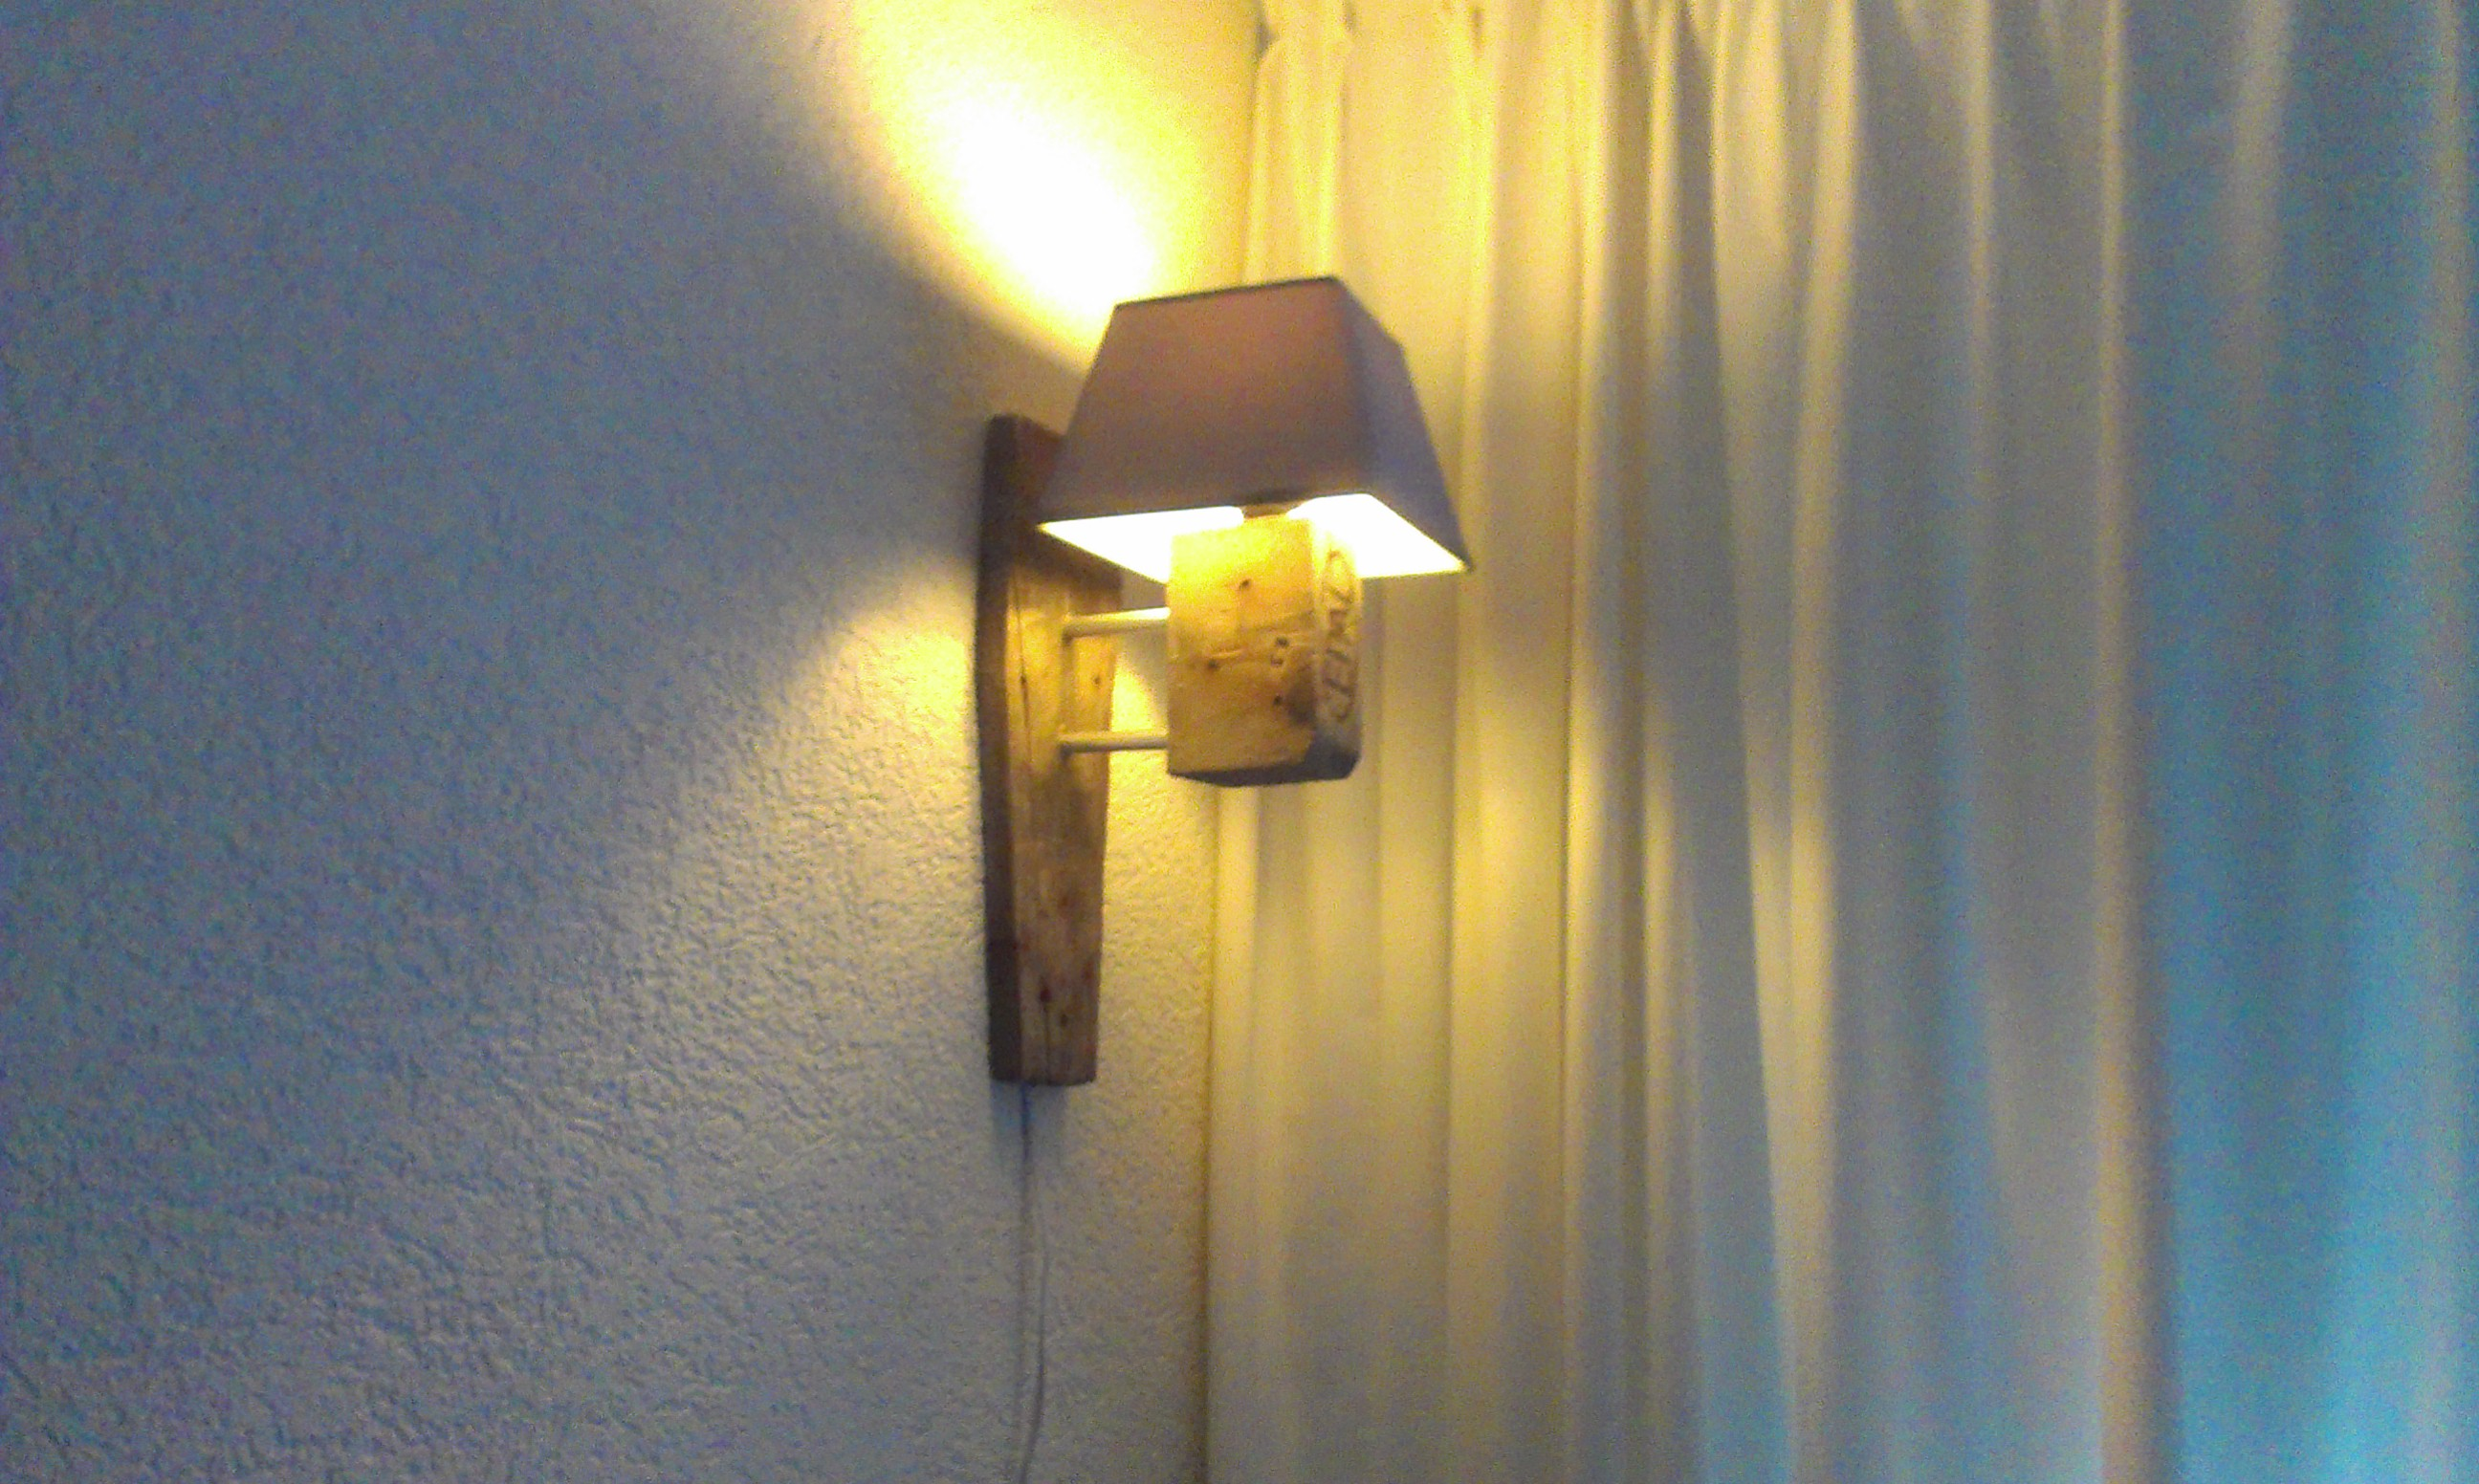 Awesome pallet lamp!